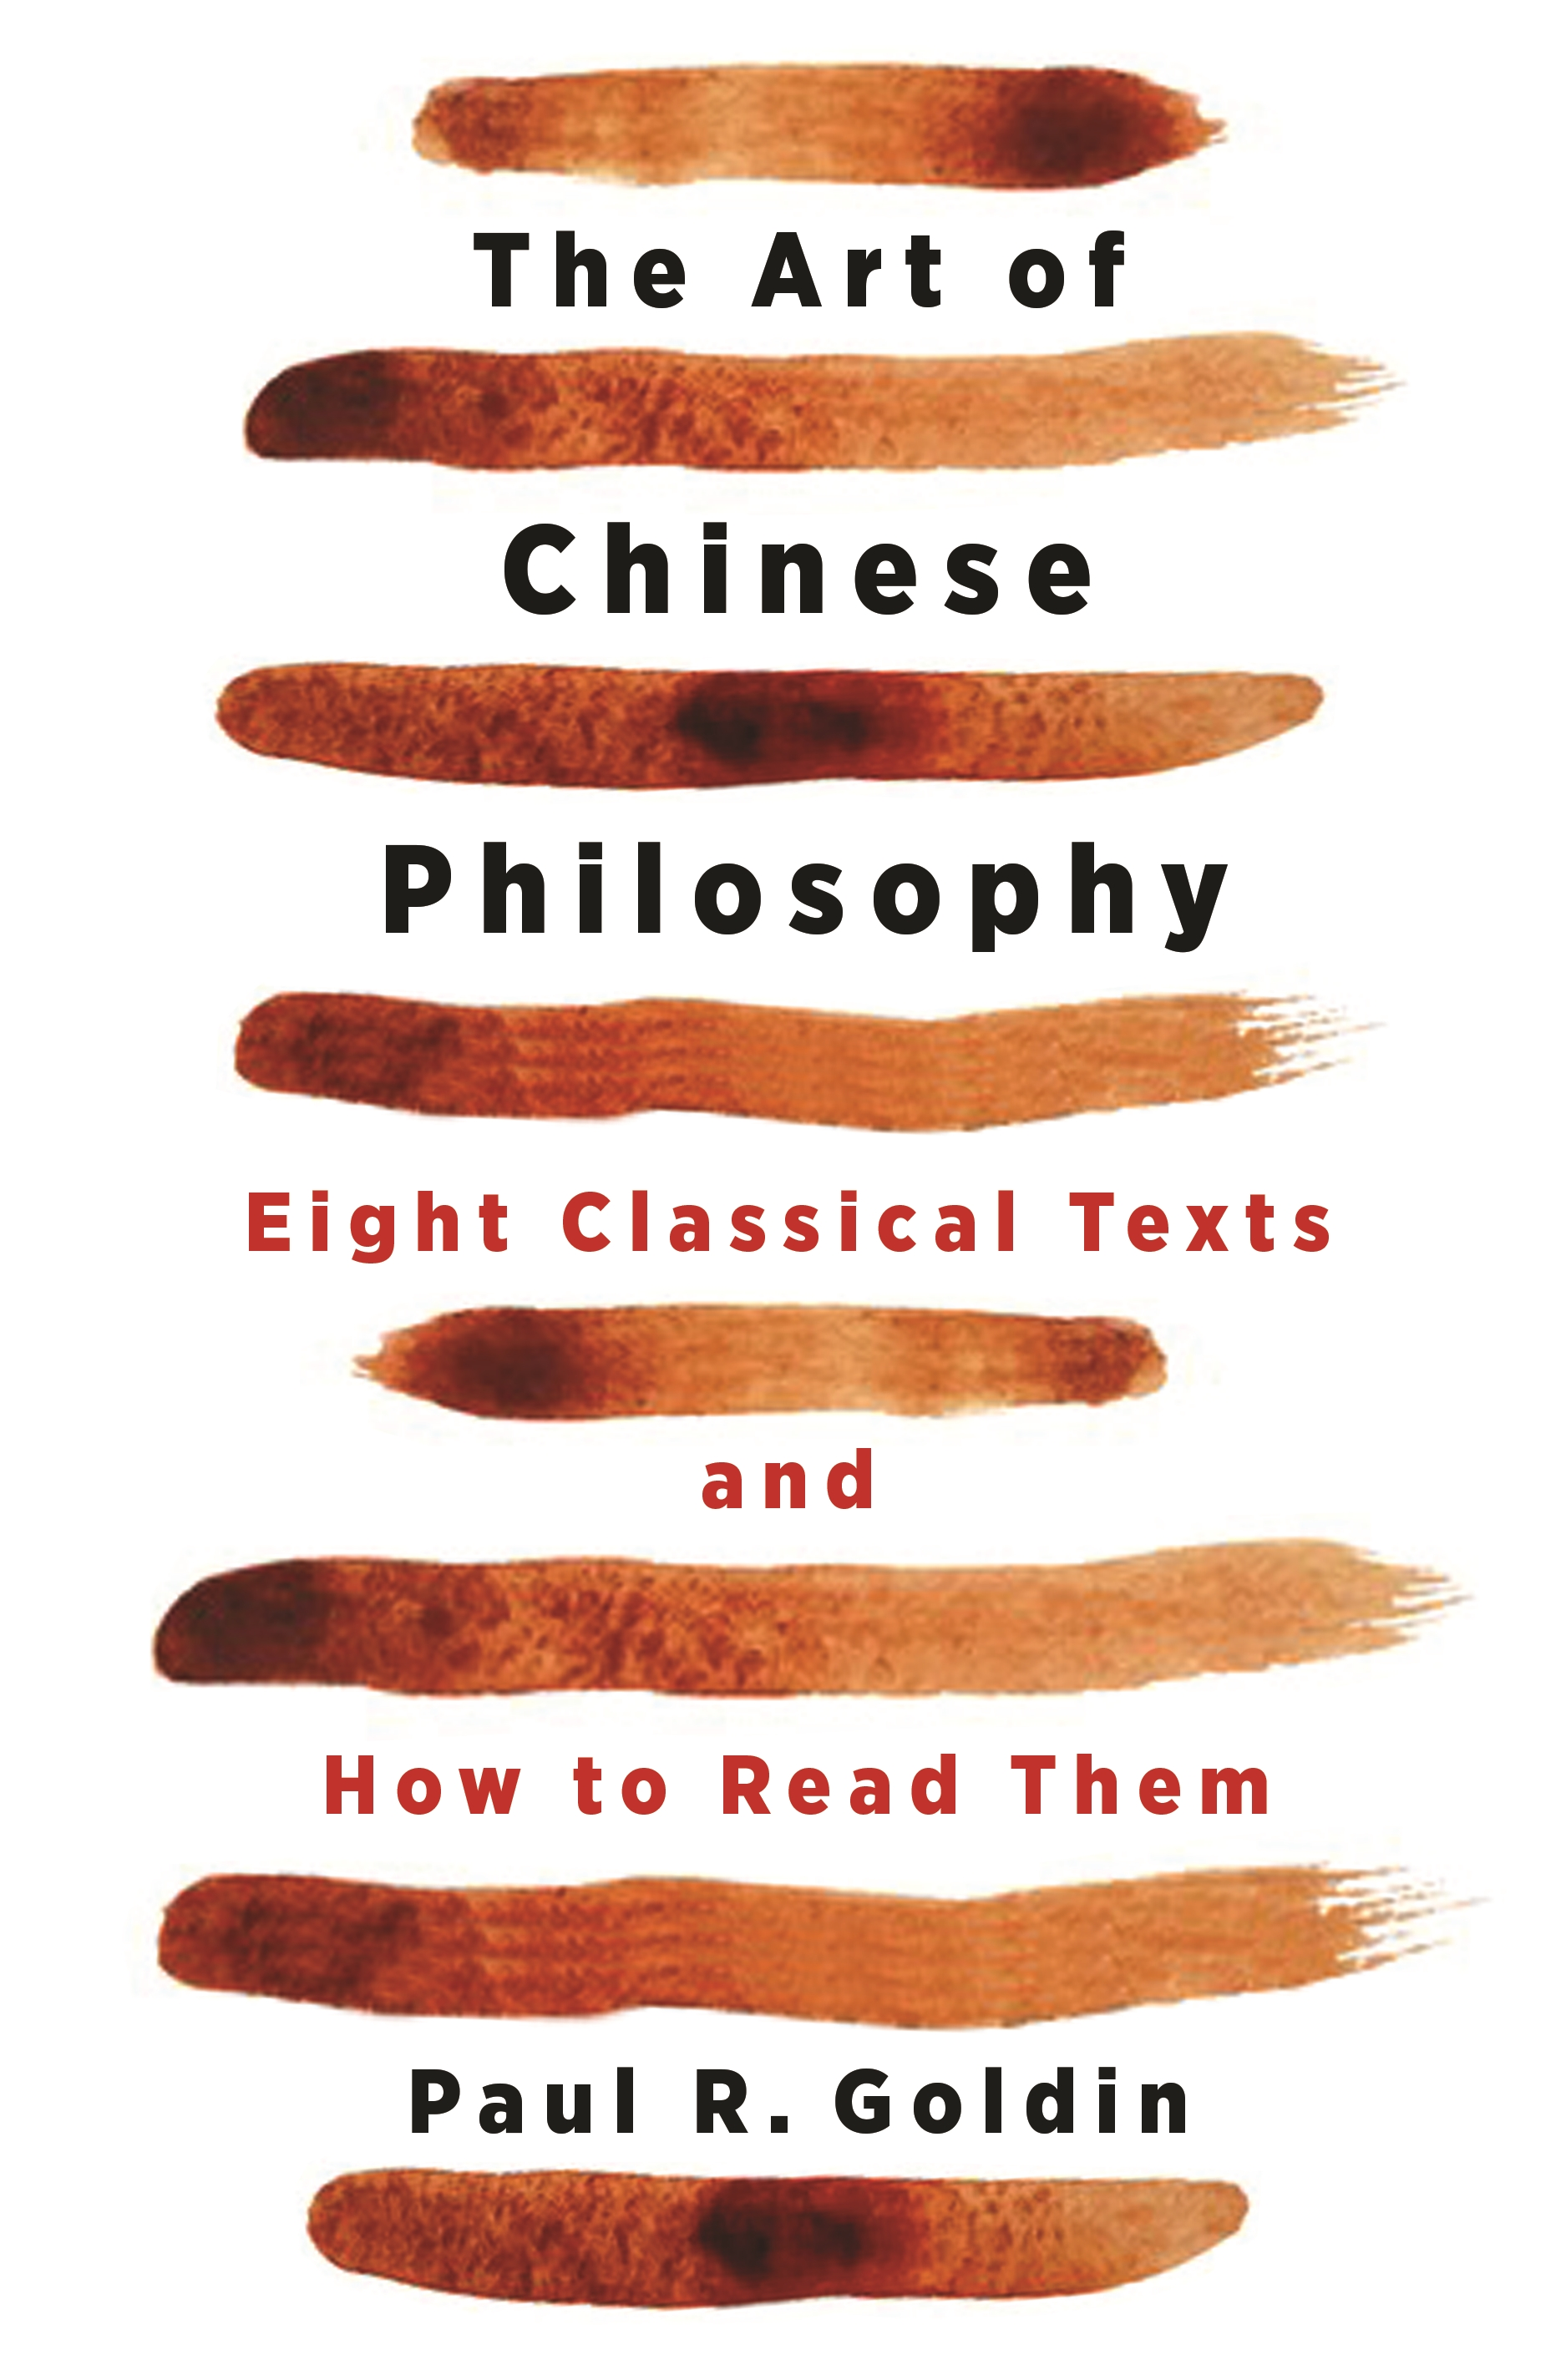 Goldin Art of Chinese Philosophy cover art